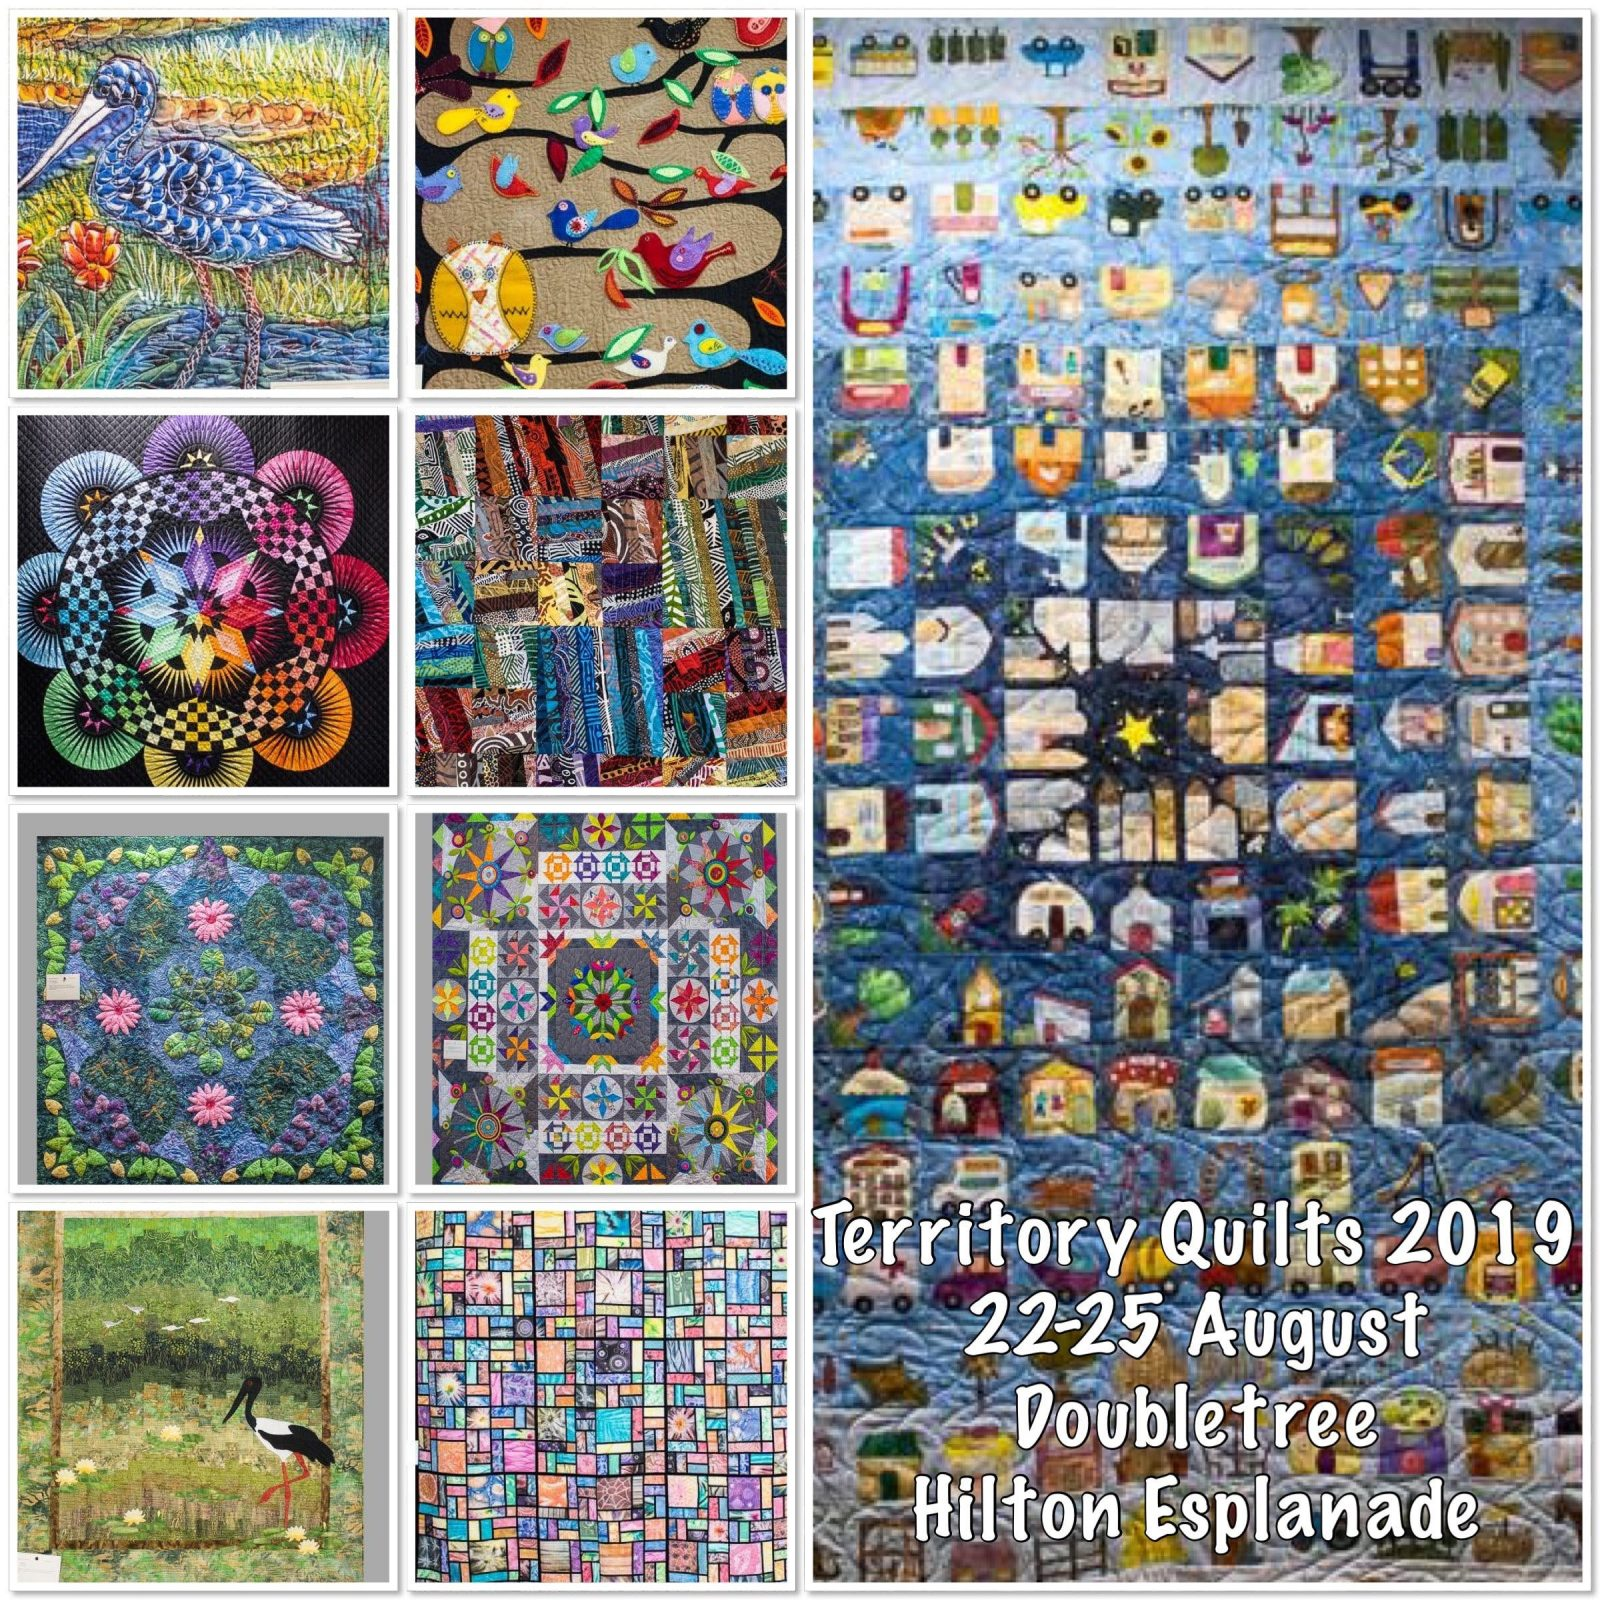 Territory Quilts Exhibition 2019